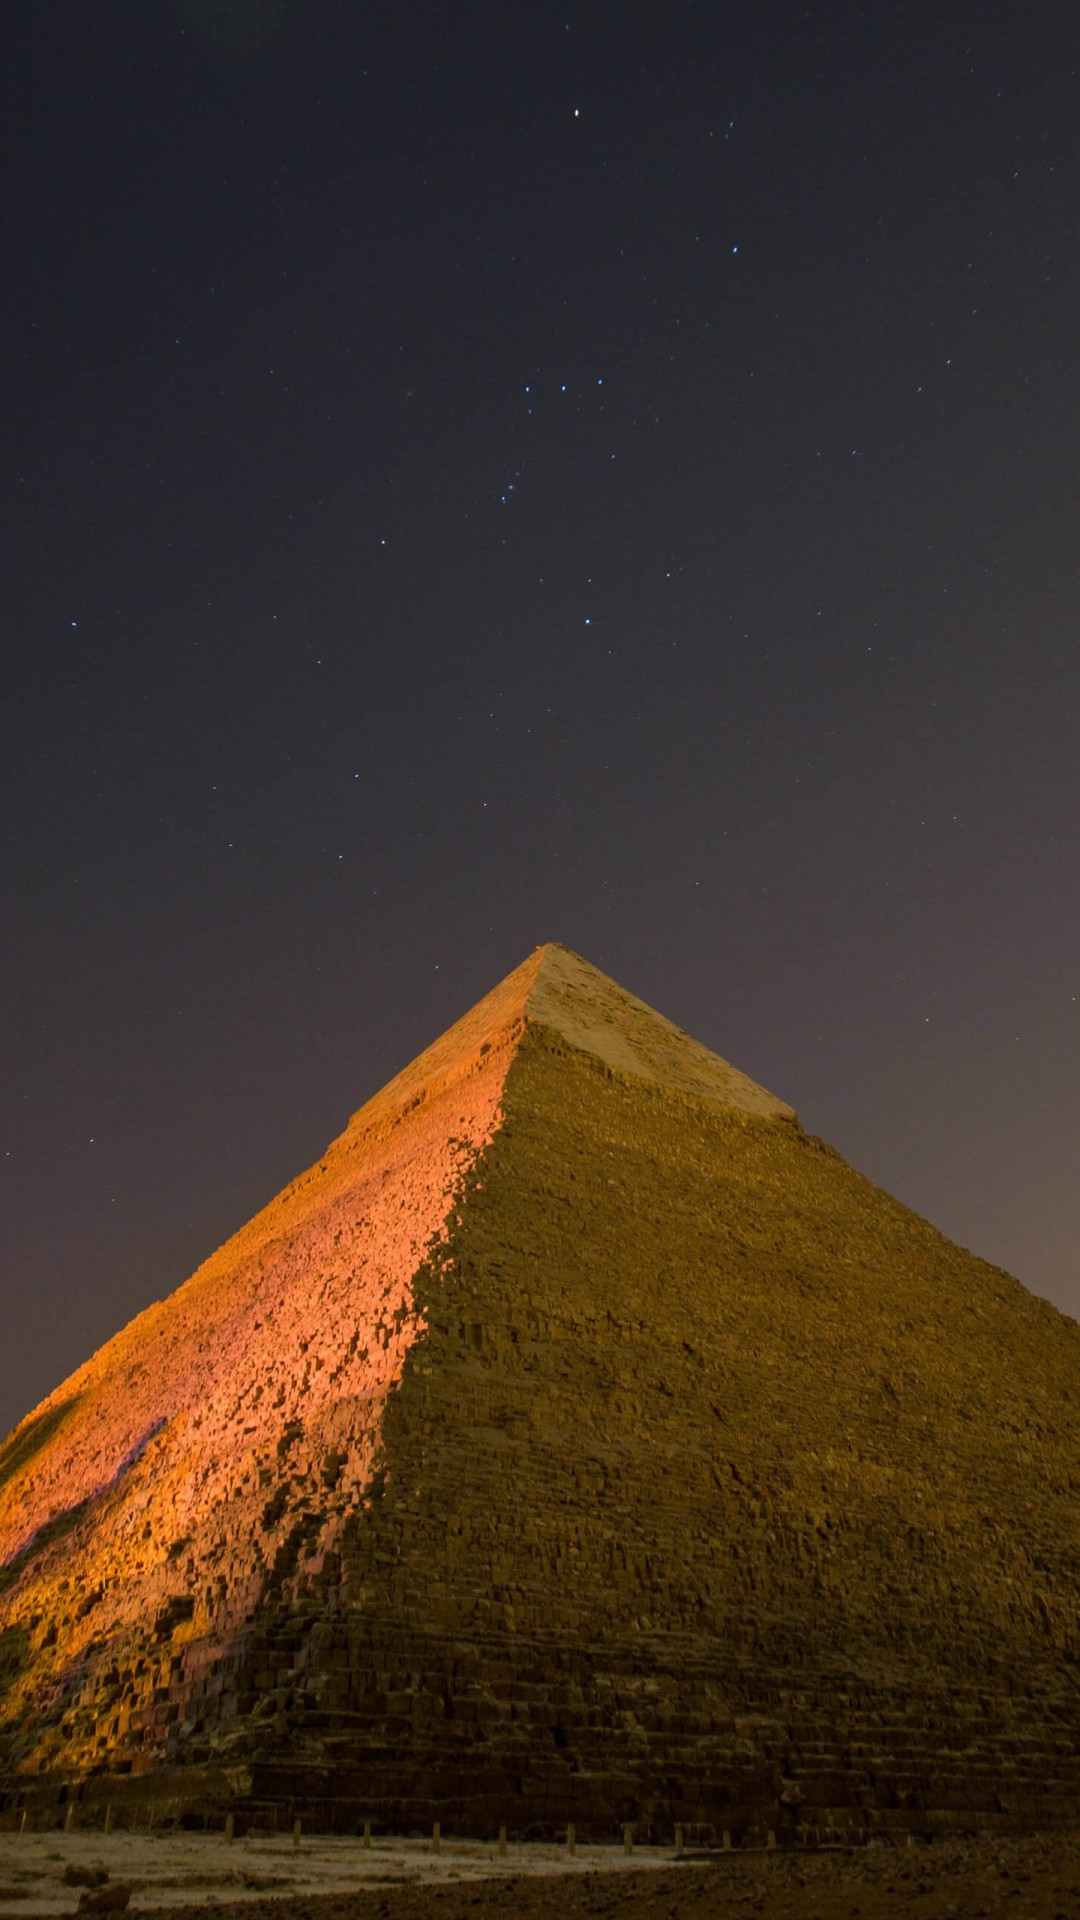 Pyramid by Night Wallpaper for SAMSUNG Galaxy S5